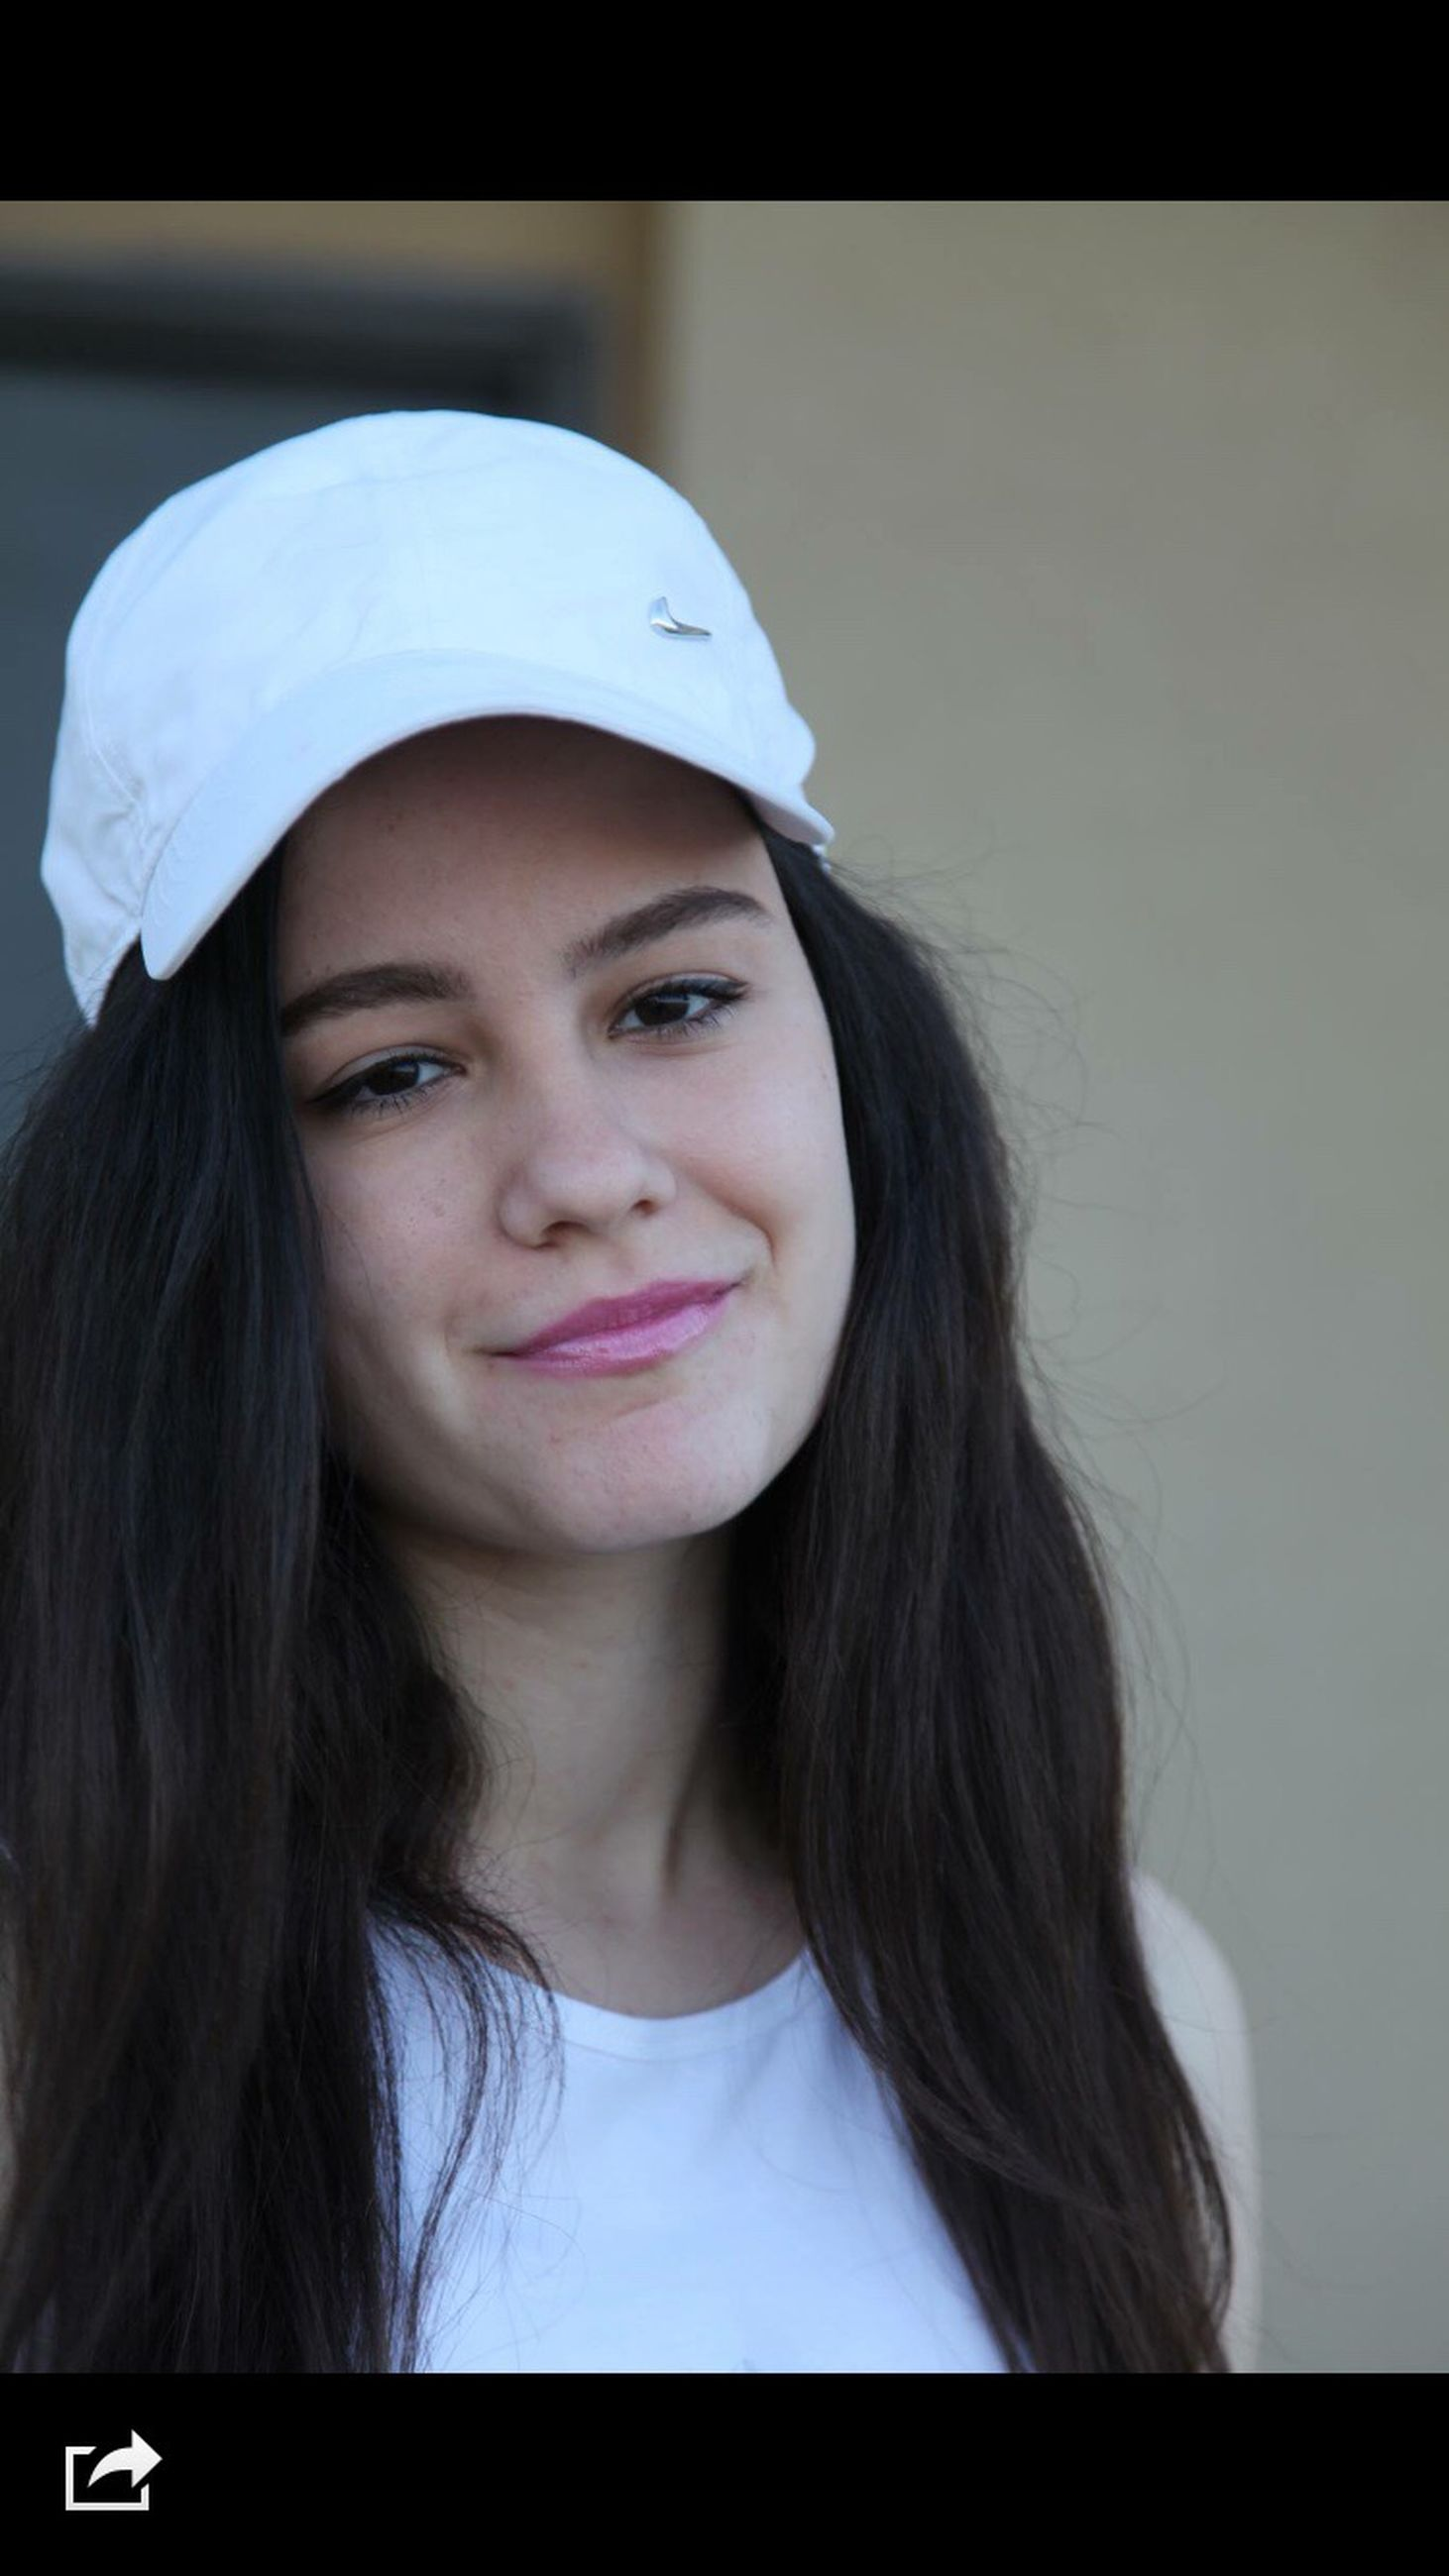 young women, young adult, long hair, person, headshot, indoors, portrait, looking at camera, lifestyles, front view, head and shoulders, leisure activity, brown hair, smiling, black hair, contemplation